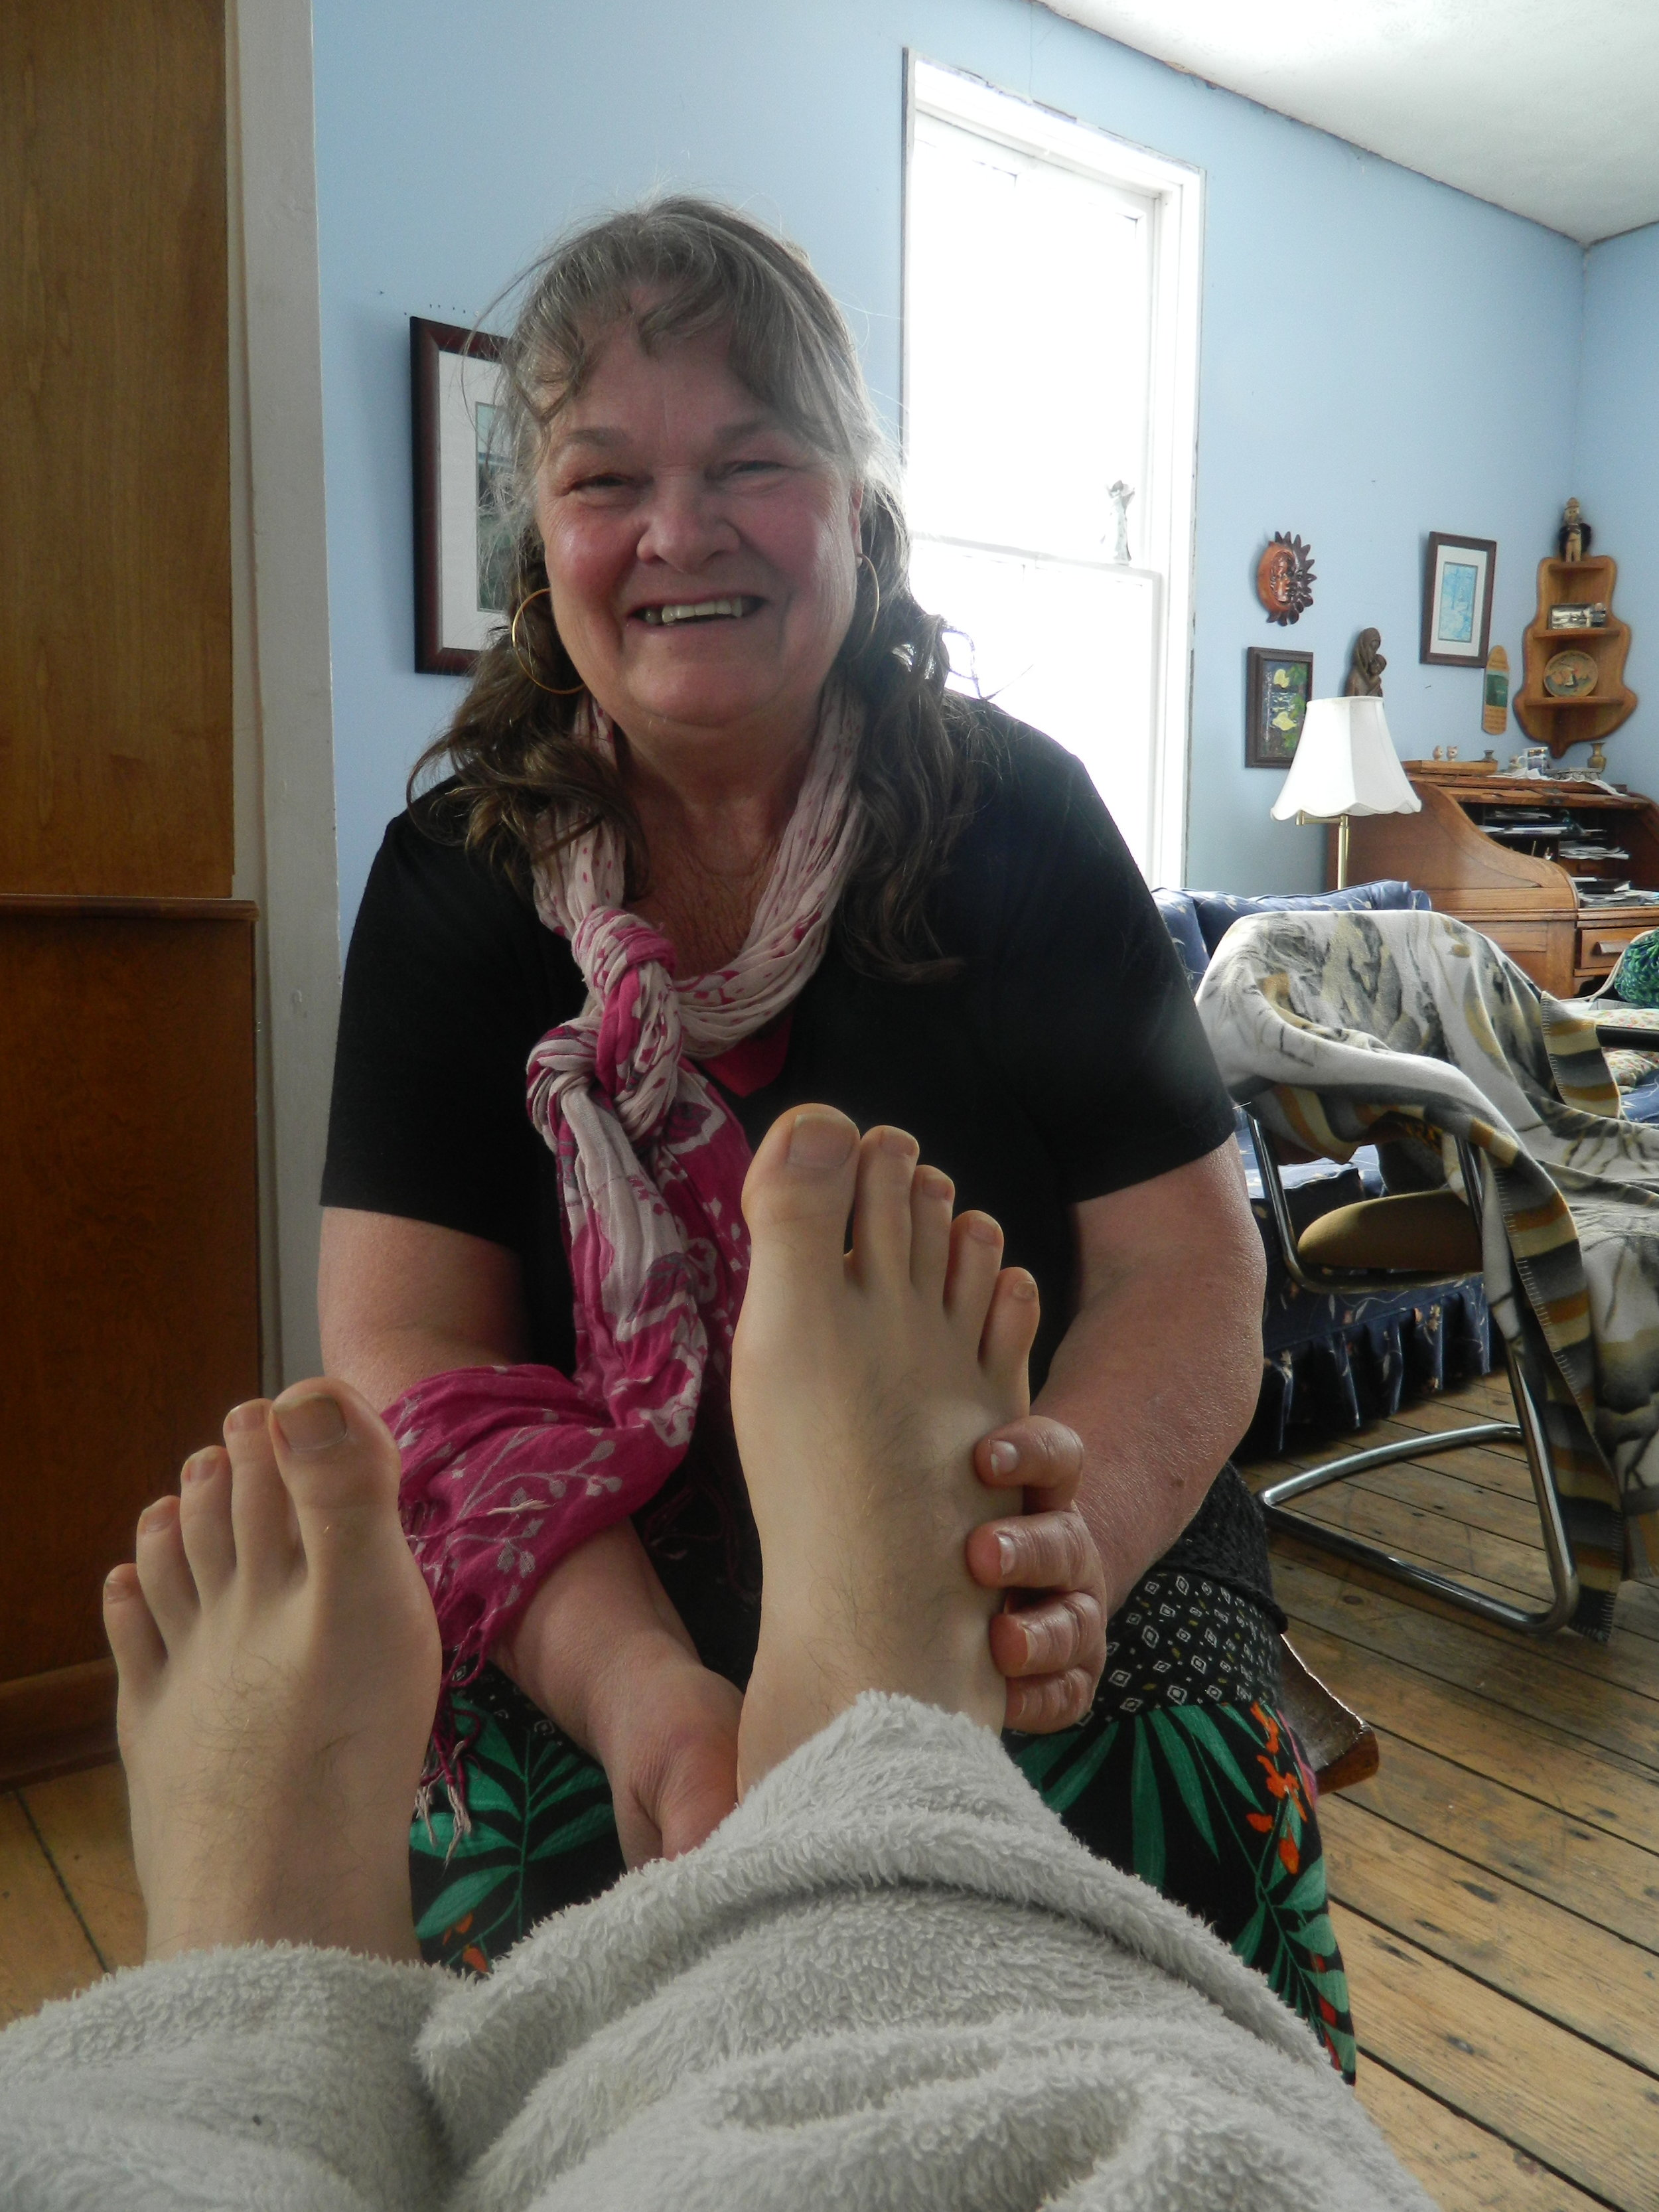 As a certified reflexologist, Marilyn offers Reflexology sessions at Windsbreath or at your home at reasonable rates. Sessions may also include some therapeutic touch and reiki.Marilyn also offers foot parties. Invite your friends over for an evening of socializing and she will join you and provide each of you a 20-30-minute reflexology sessions, reflexology sessions can also be combined with an individual retreat or bed and breakfast stay. -